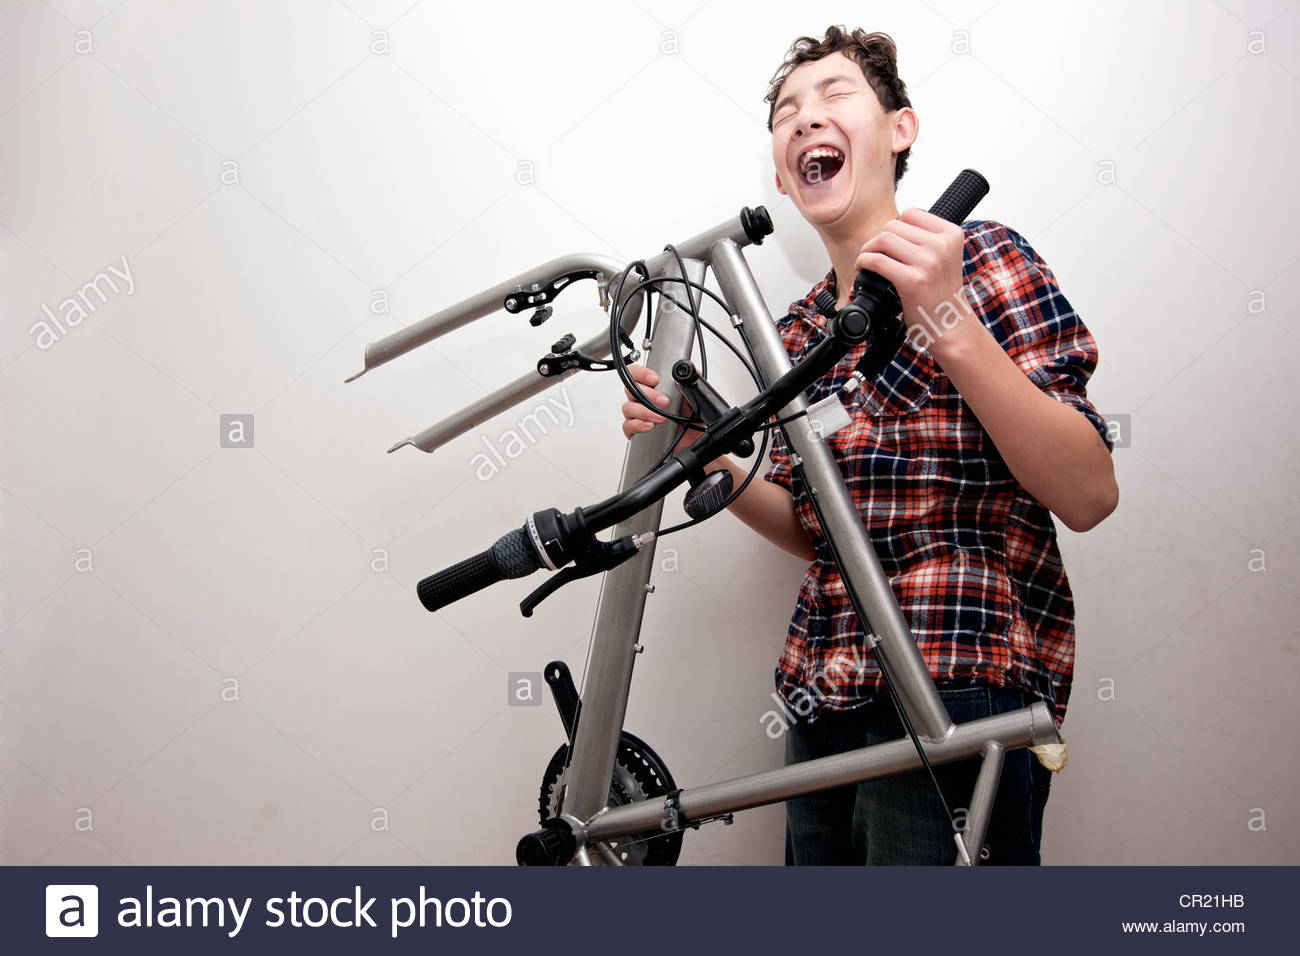 Laughing boy carrying bicycle parts - Stock Image